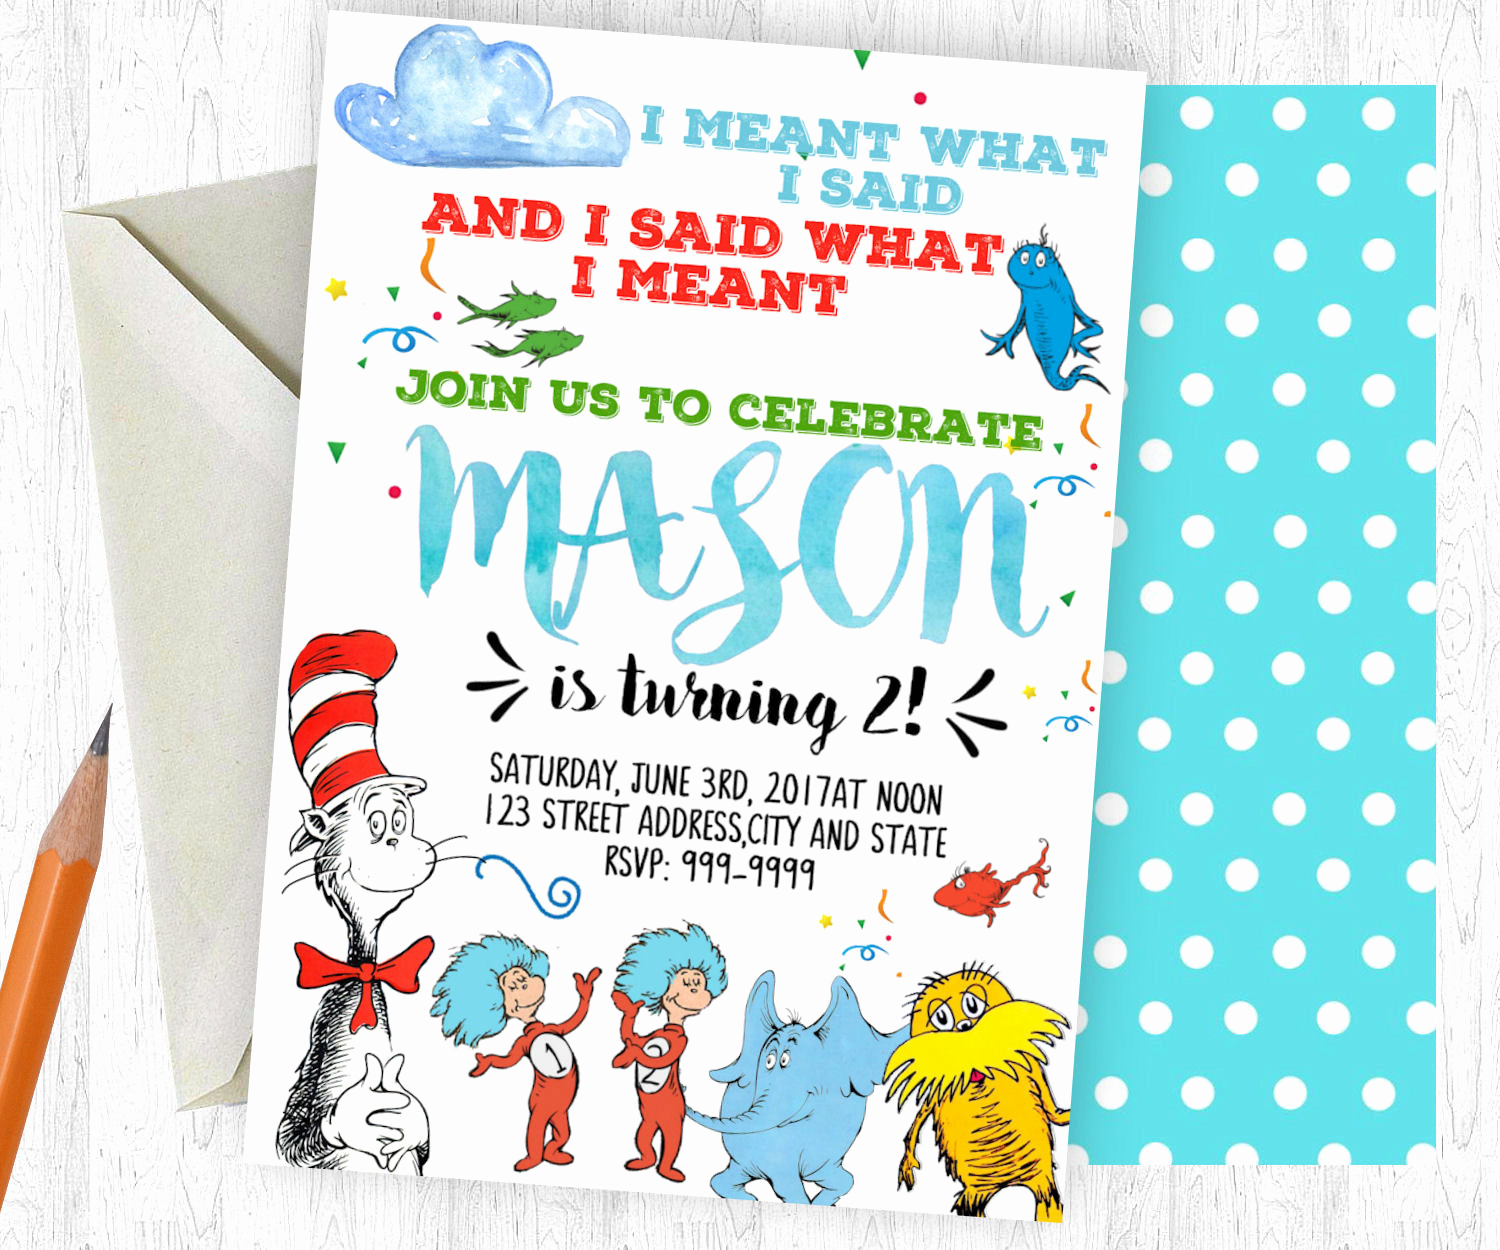 Dr Seuss Birthday Invitation Elegant Dr Seuss Birthday Invitation Dr Seuss Invitation Dr Seuss